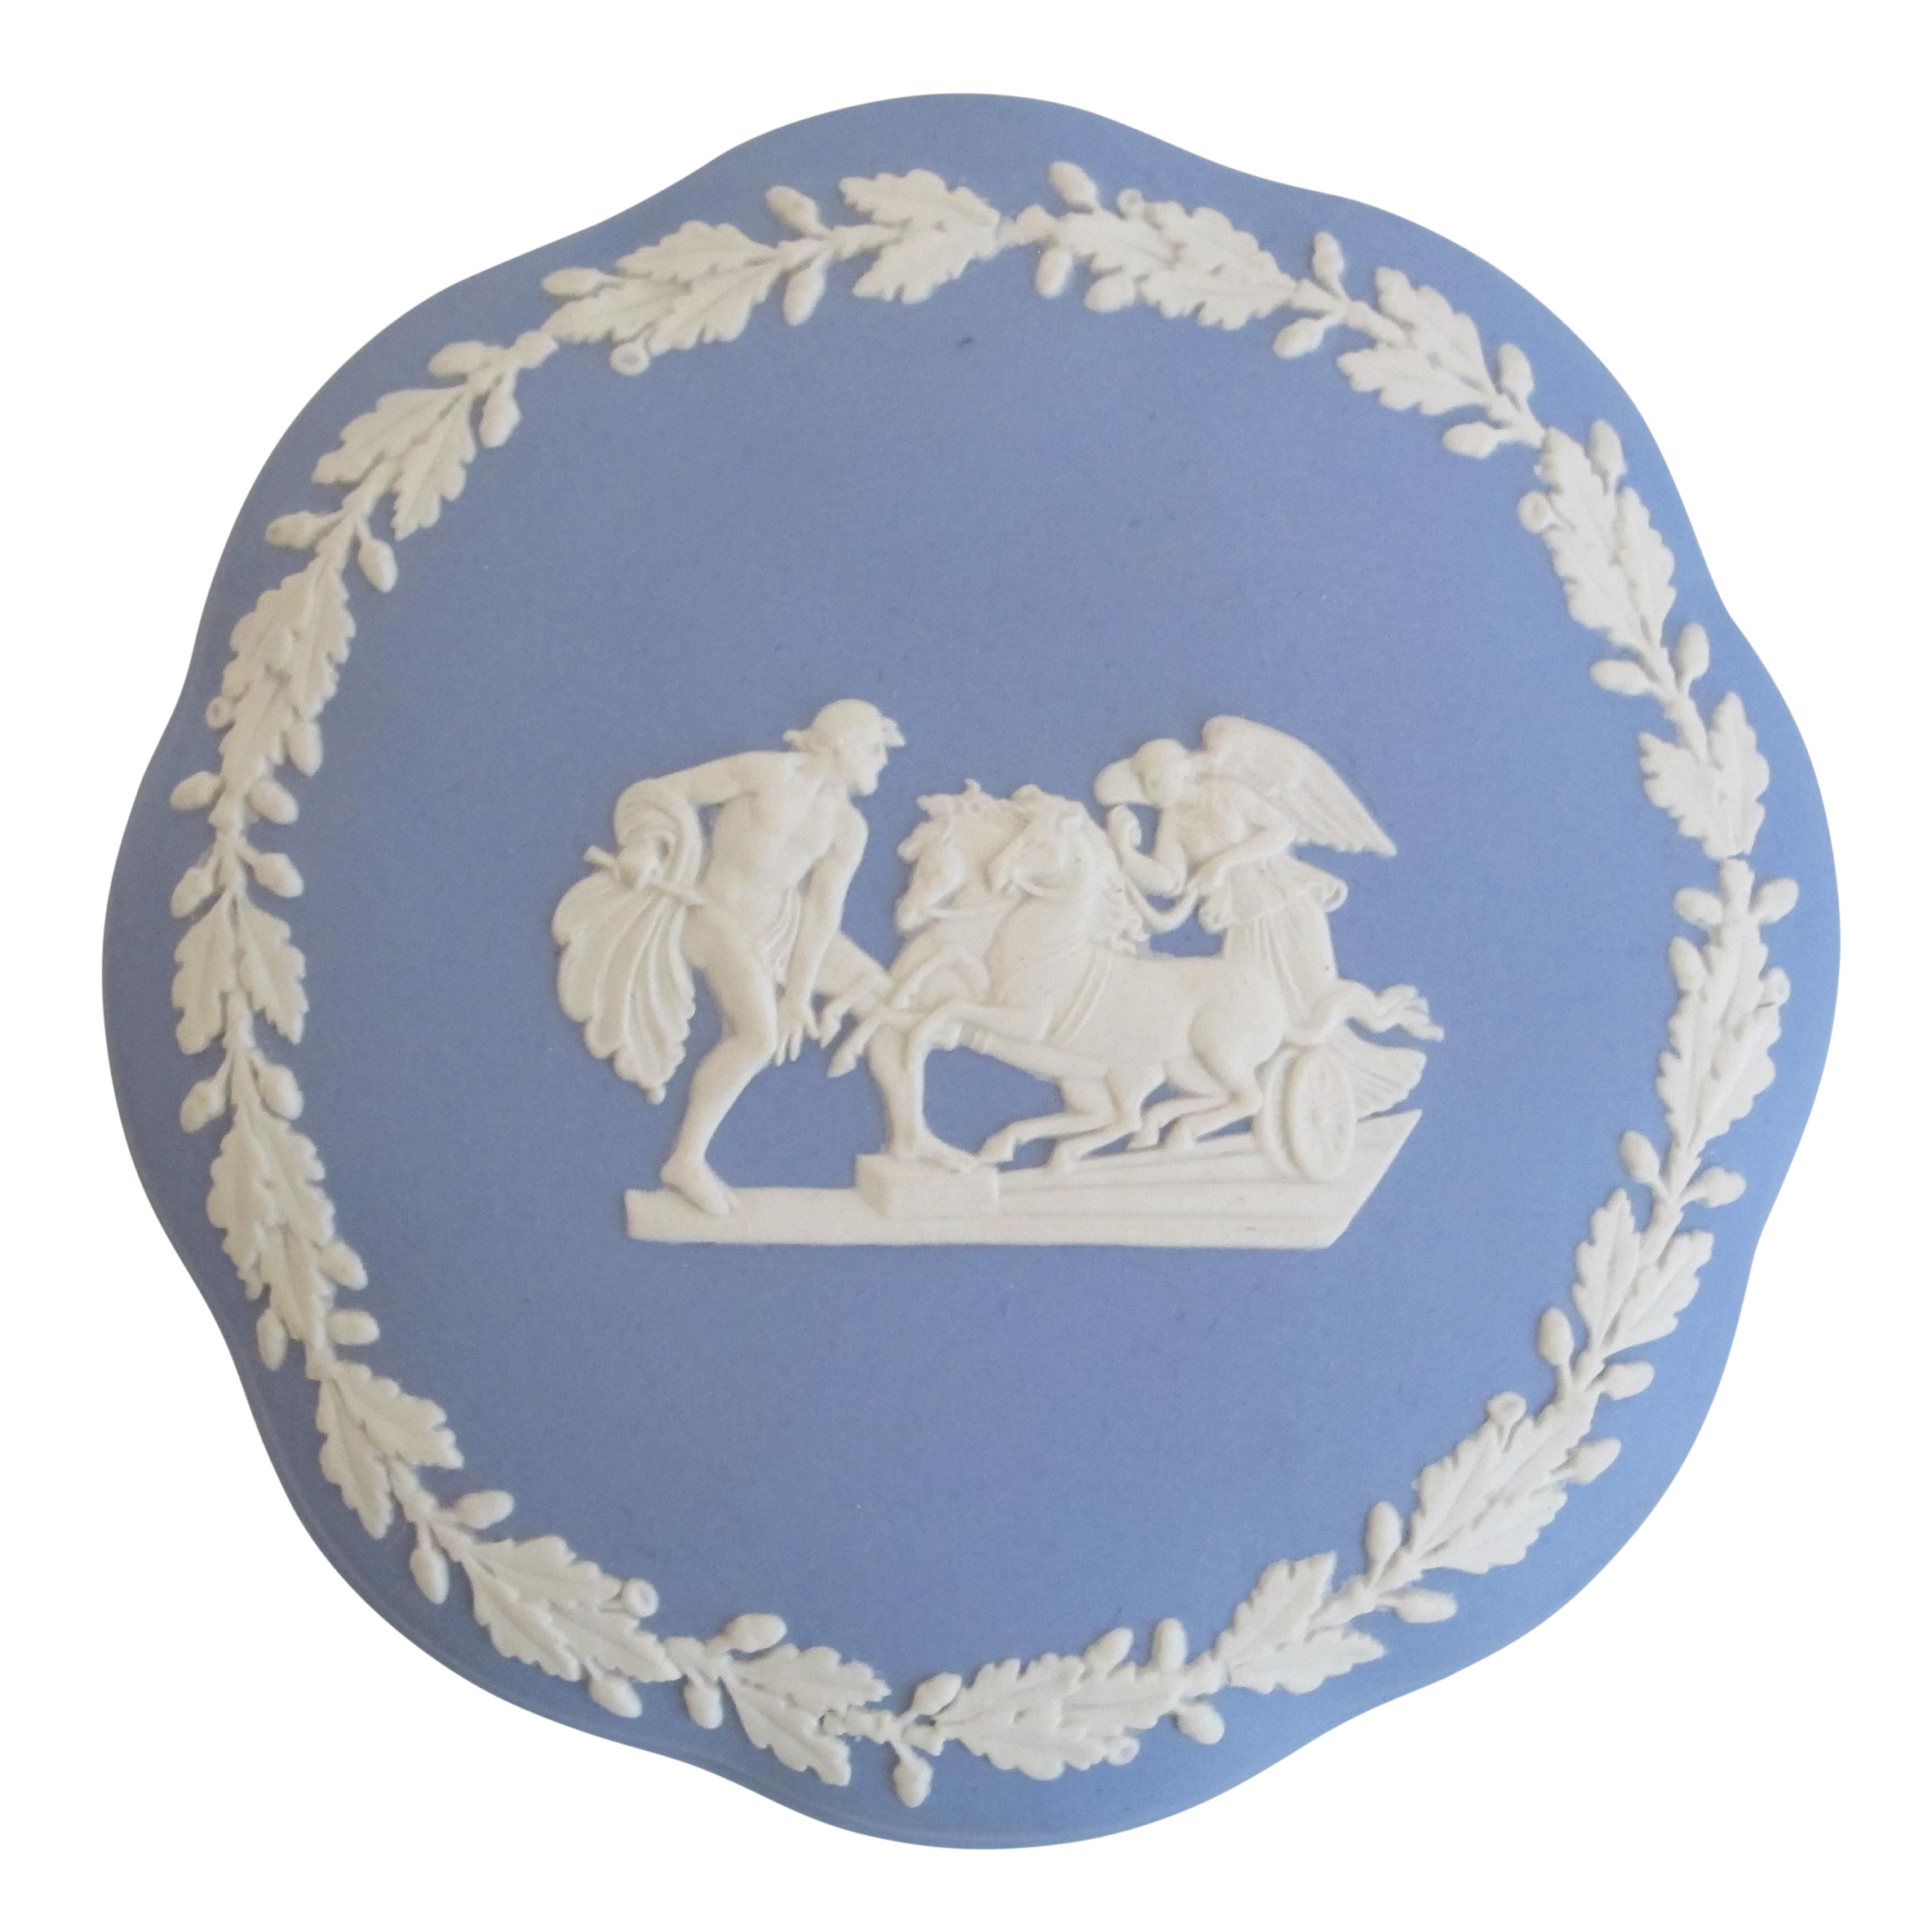 Wedgewood trinket box chairish for Wedgewood designs